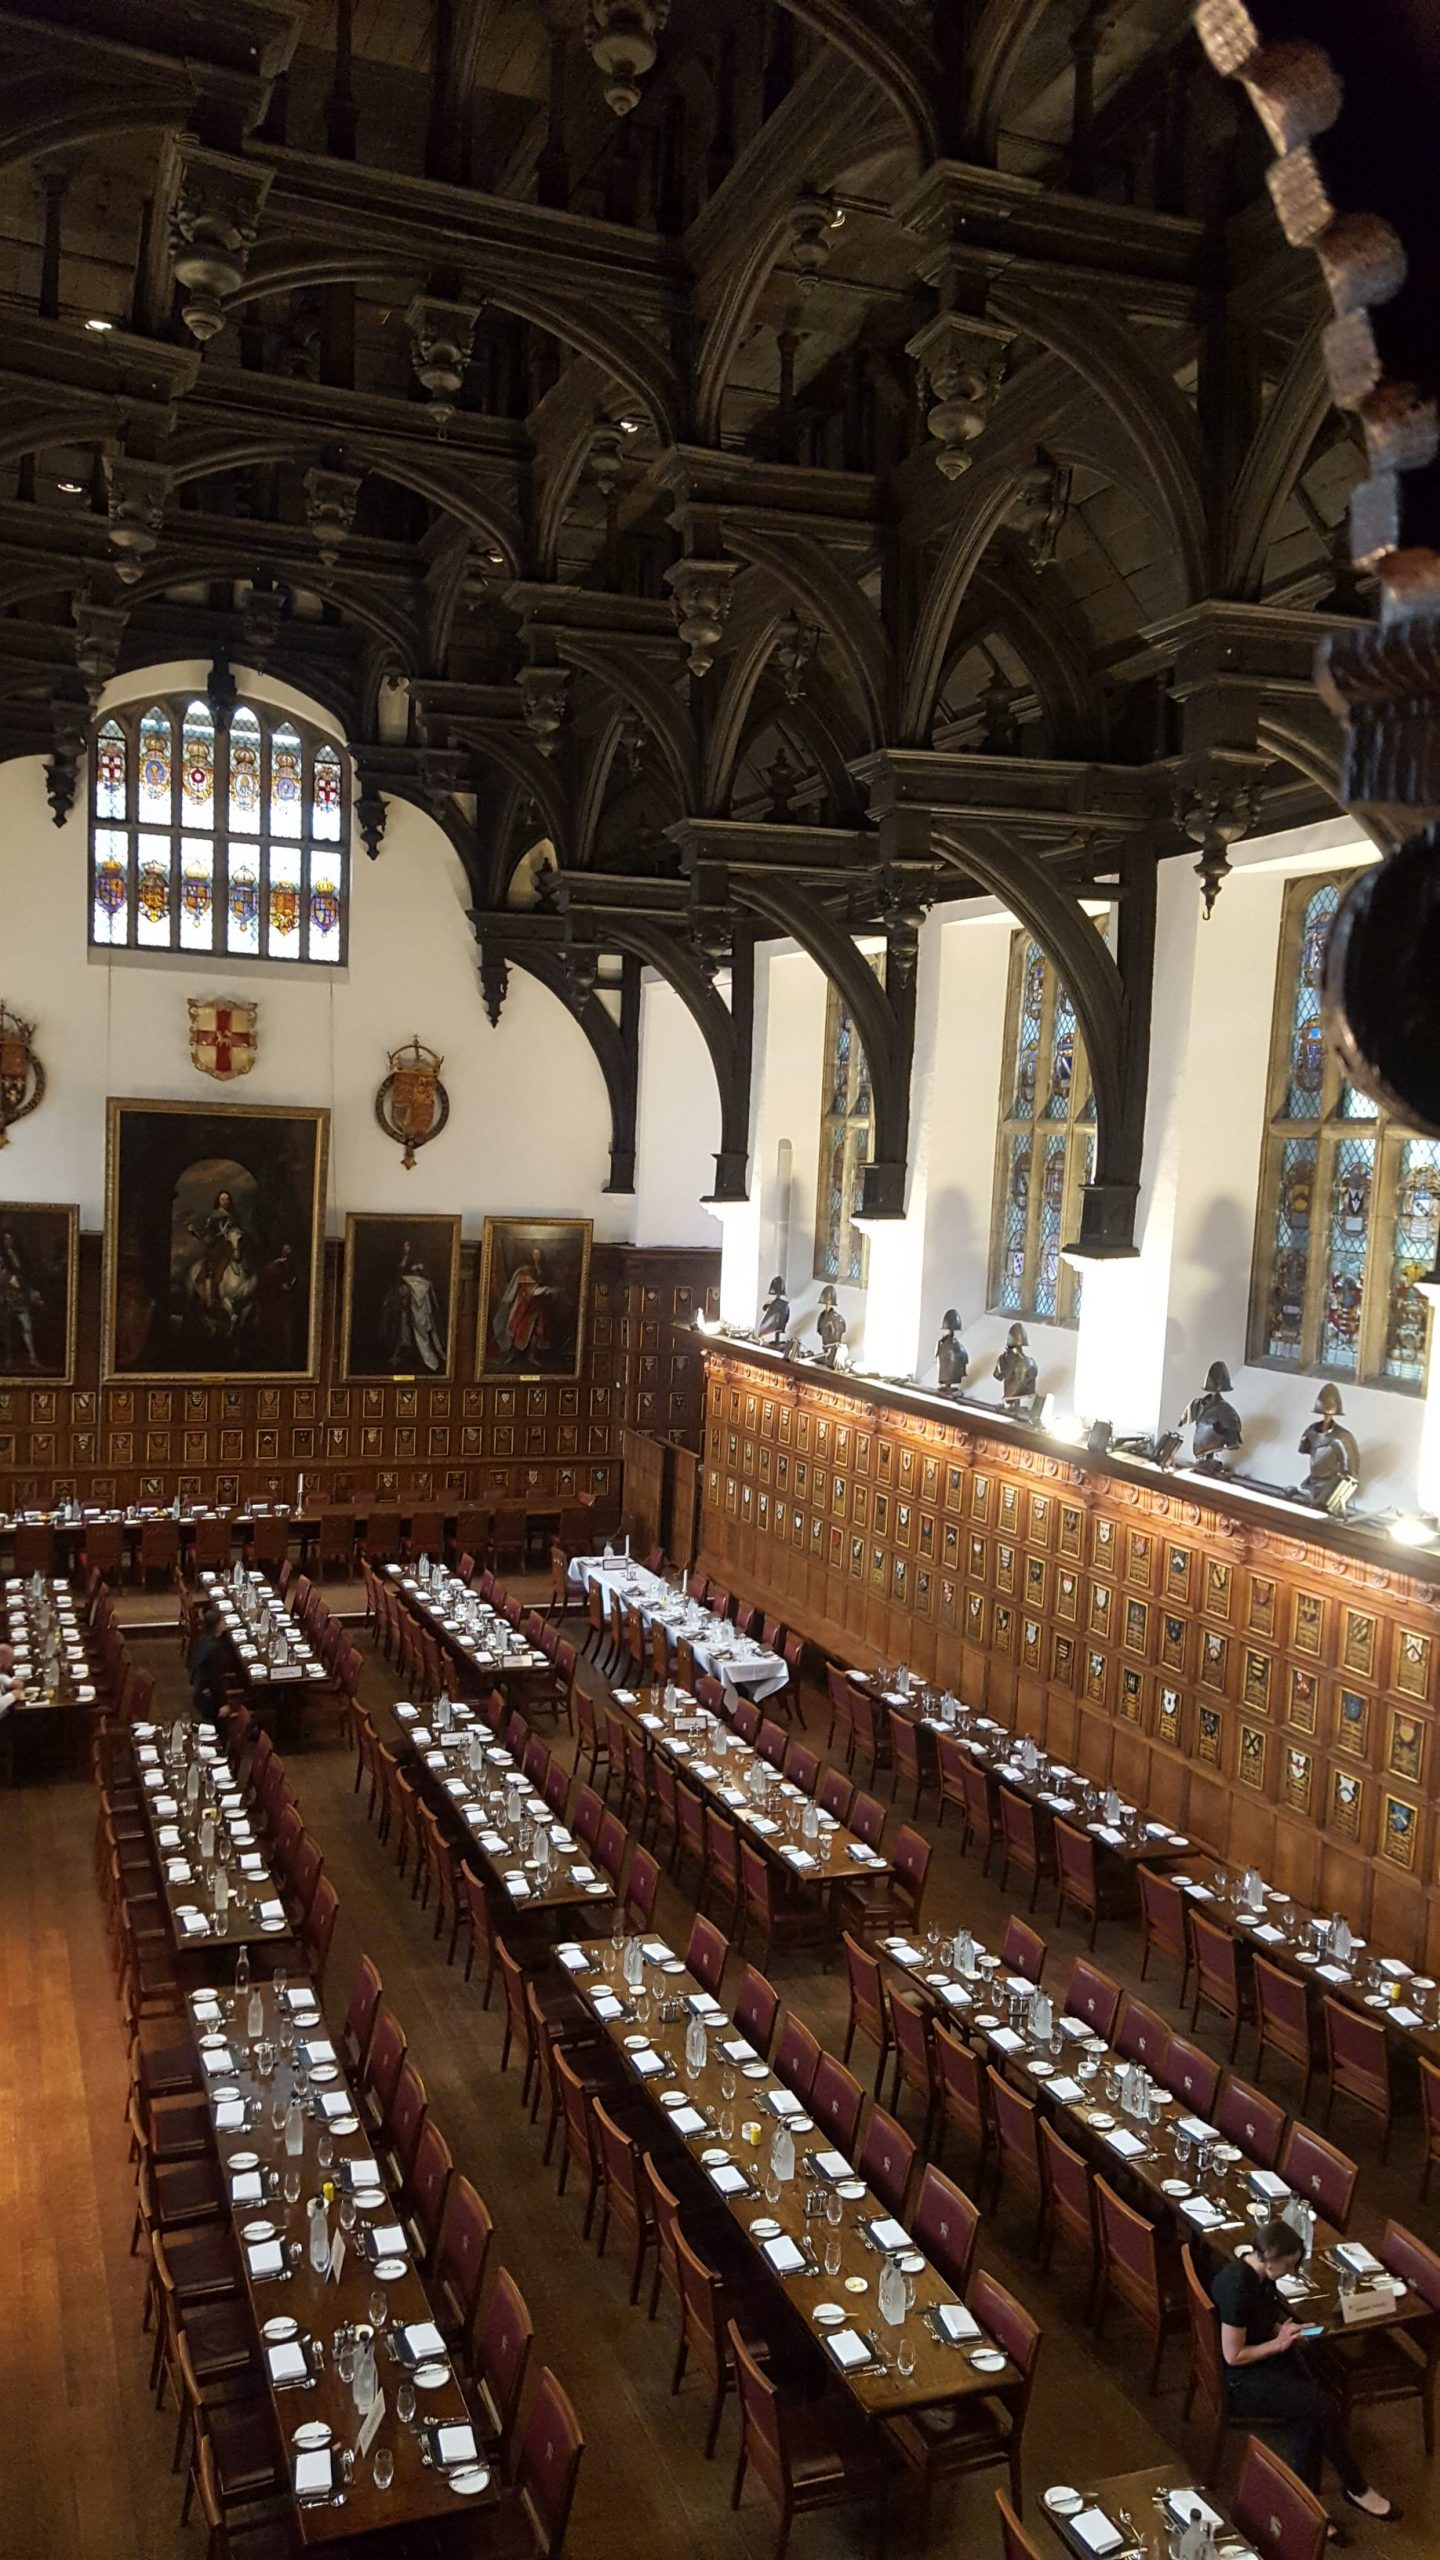 VISITING MIDDLE TEMPLE - Catherine's Cultural Wednesdays